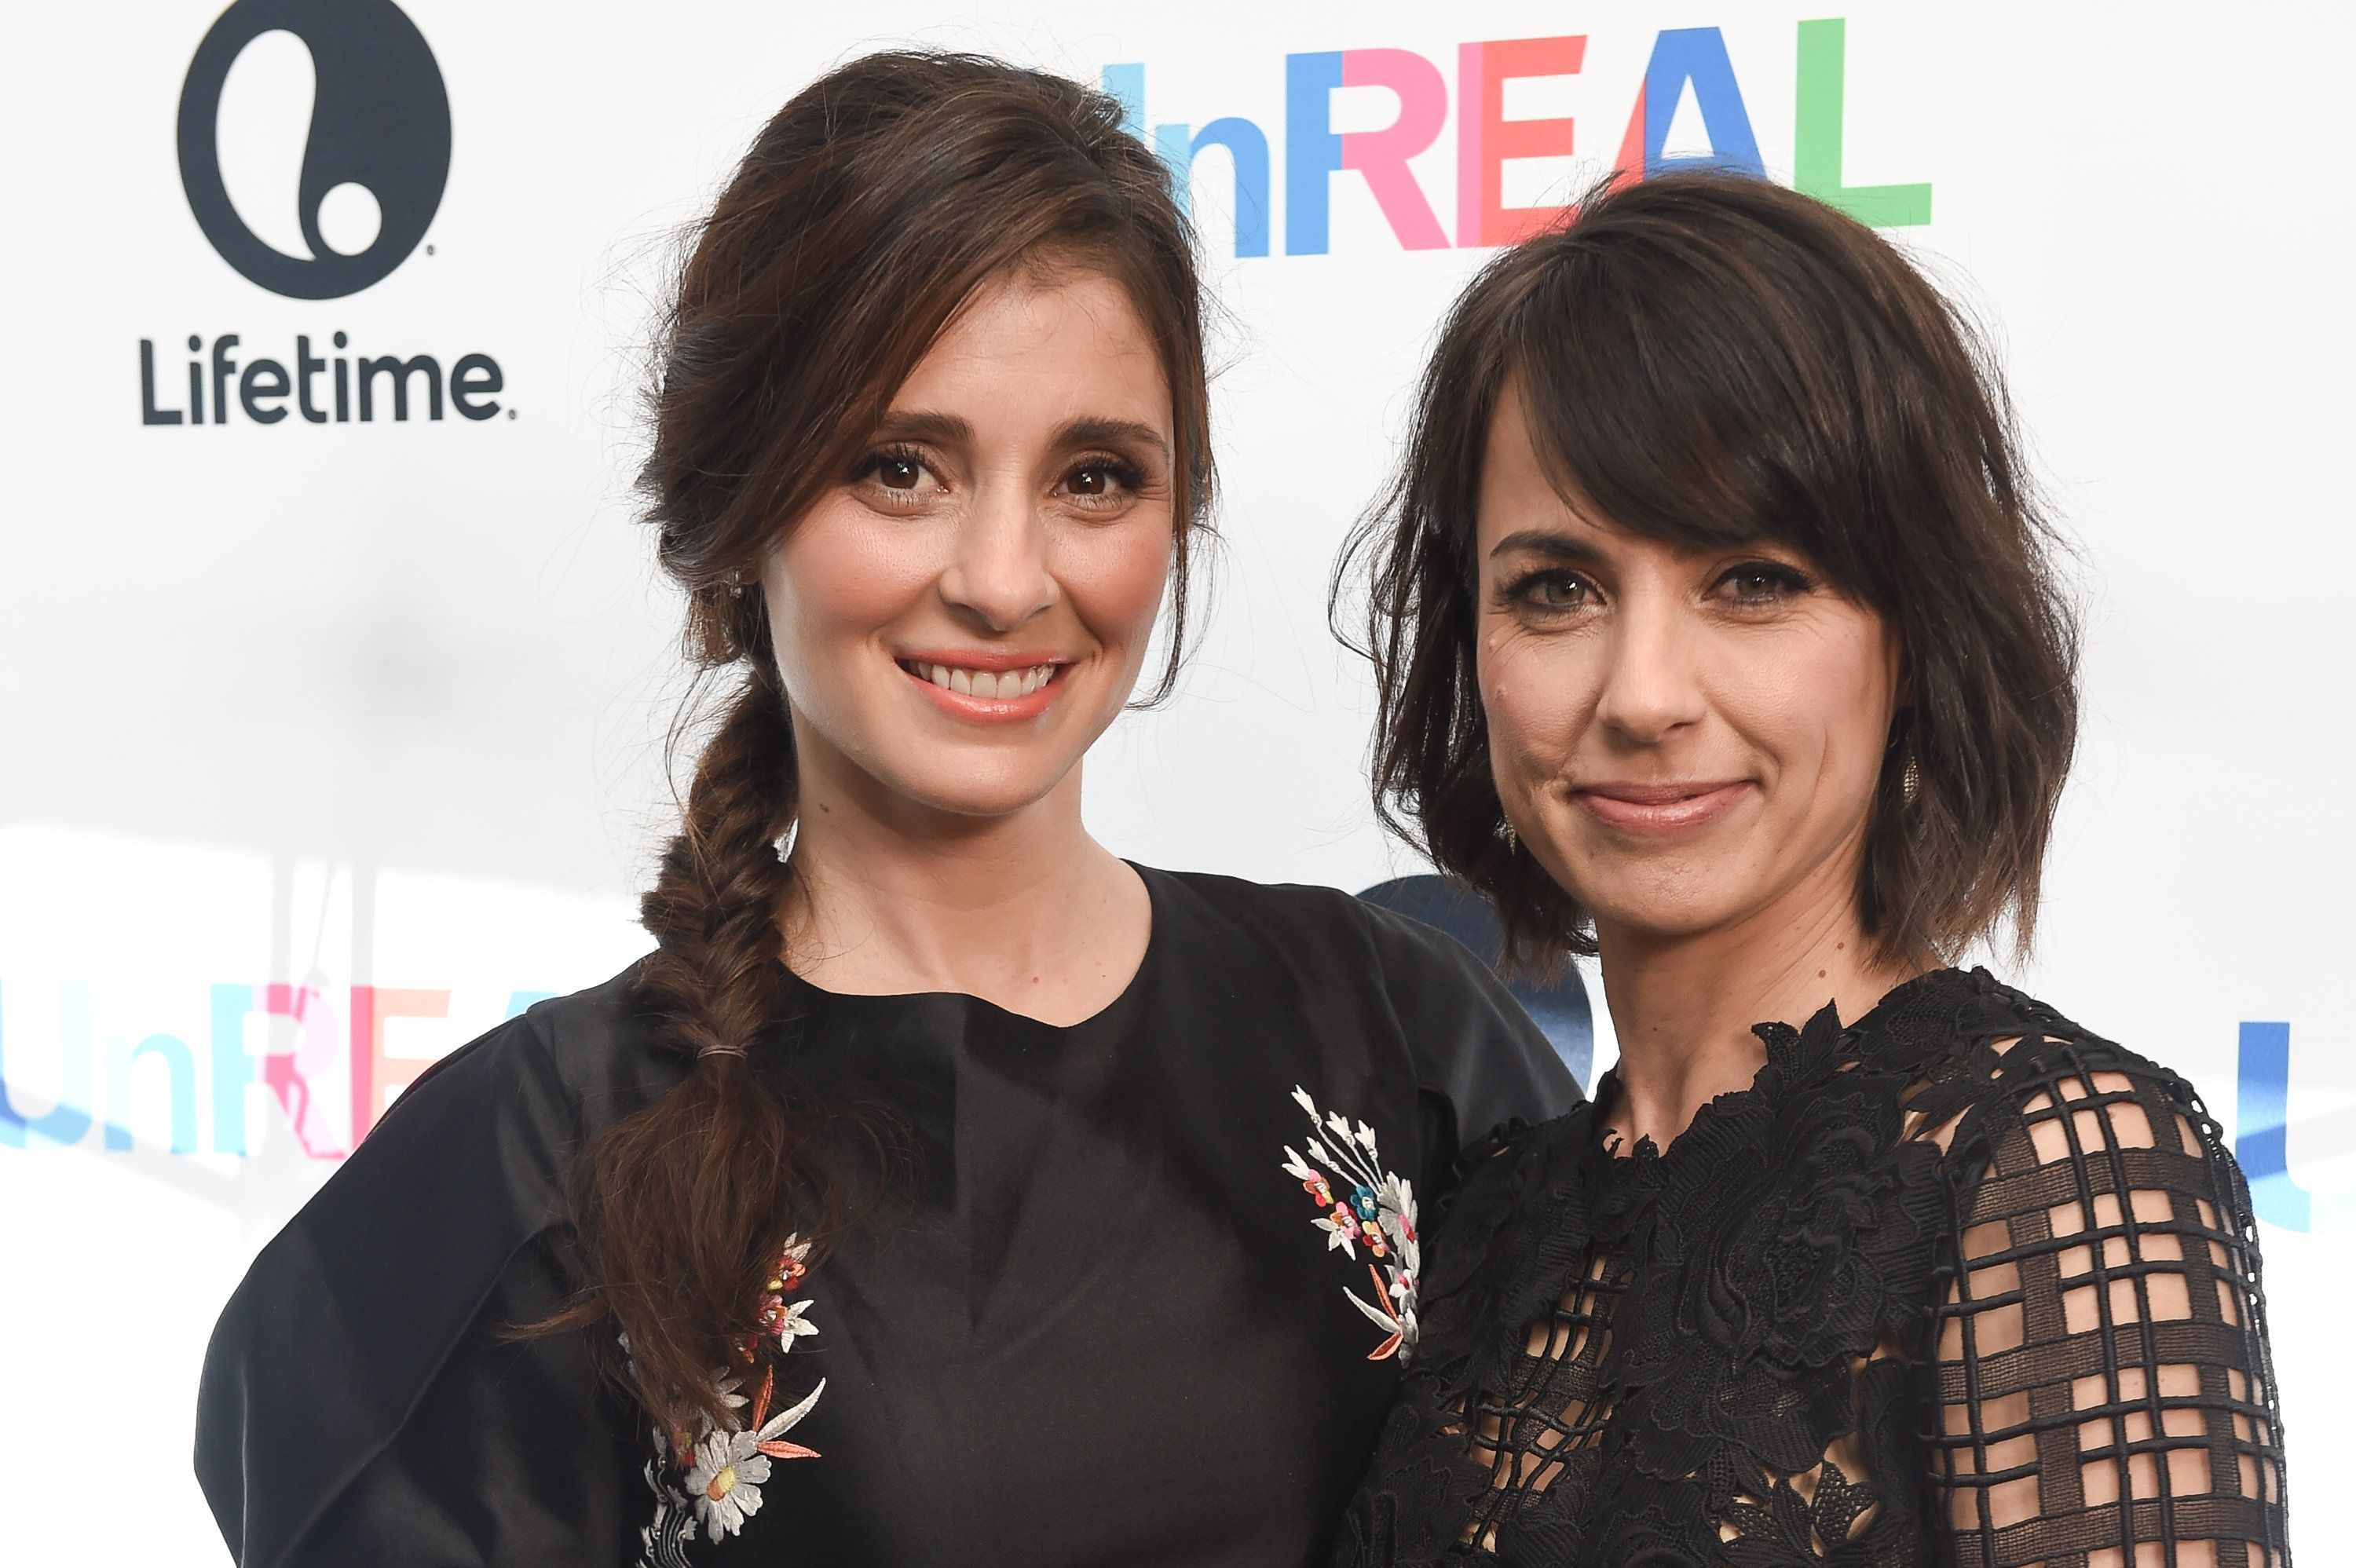 LOS ANGELES, CA - JUNE 04:  Actresses Shiri Appleby (L) and Constance Zimmer arrive at the FYC Screening Of Lifetime's 'UnREAL' at Harmony Gold on June 4, 2016 in Los Angeles, California.  (Photo by Emma McIntyre/Getty Images)